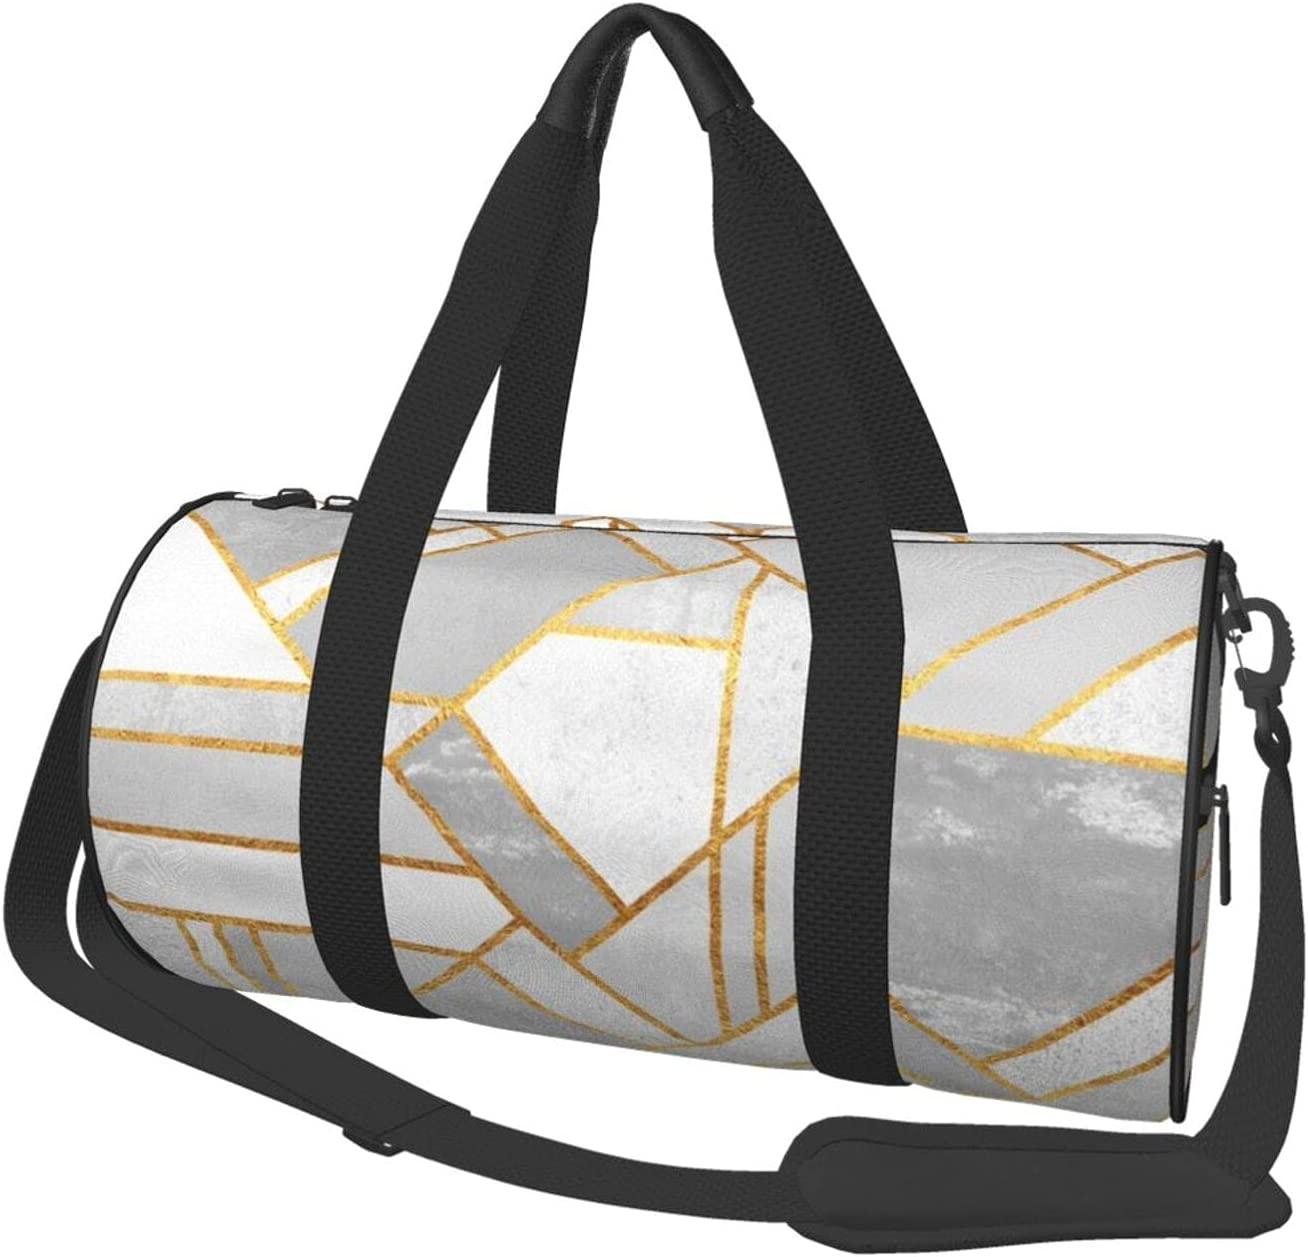 Gold City Sport Gym Duffle Travel OFFicial site Dallas Mall for Duffel Bag Women Small Men